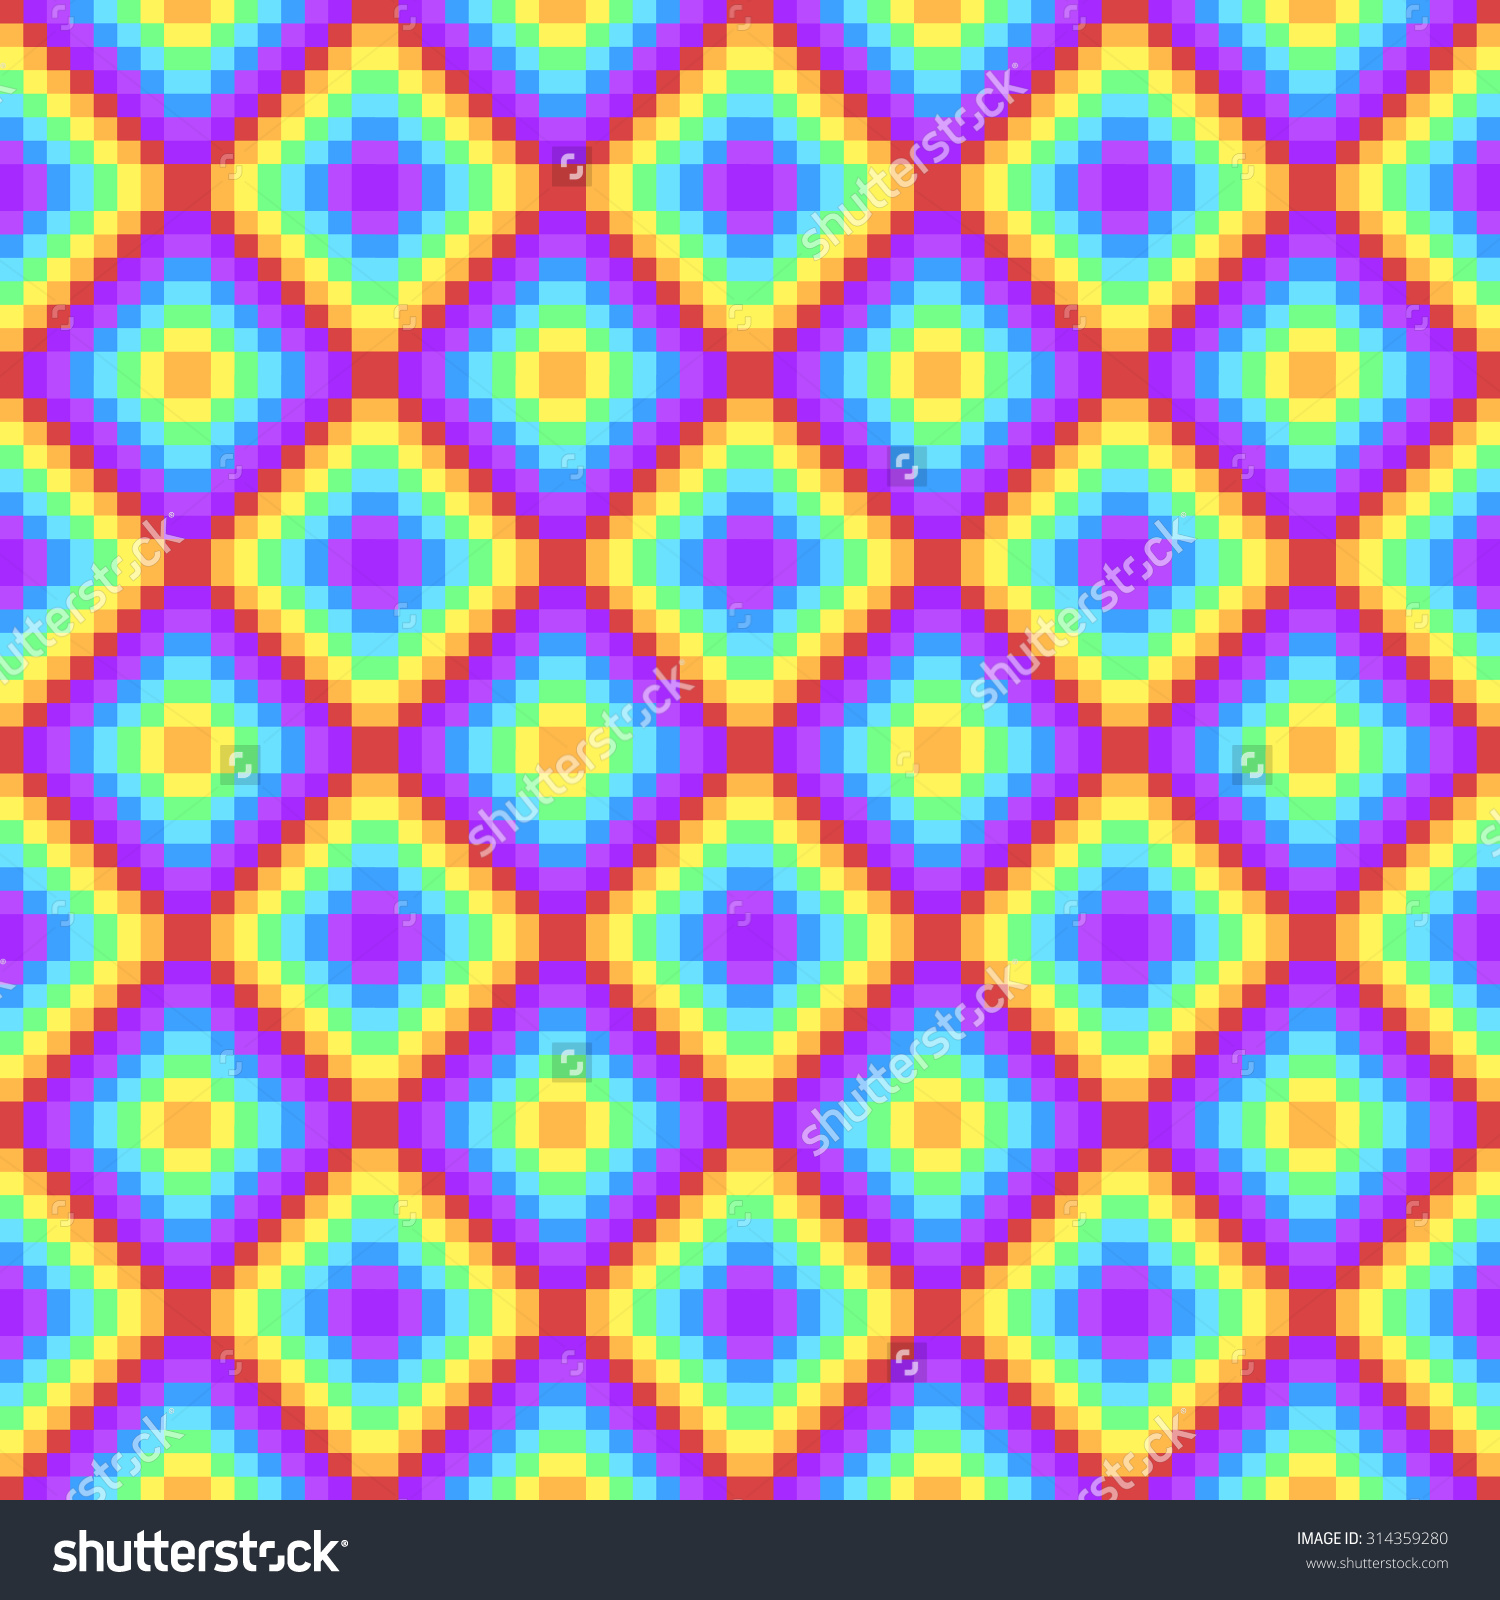 Pixel Psychedelic Background